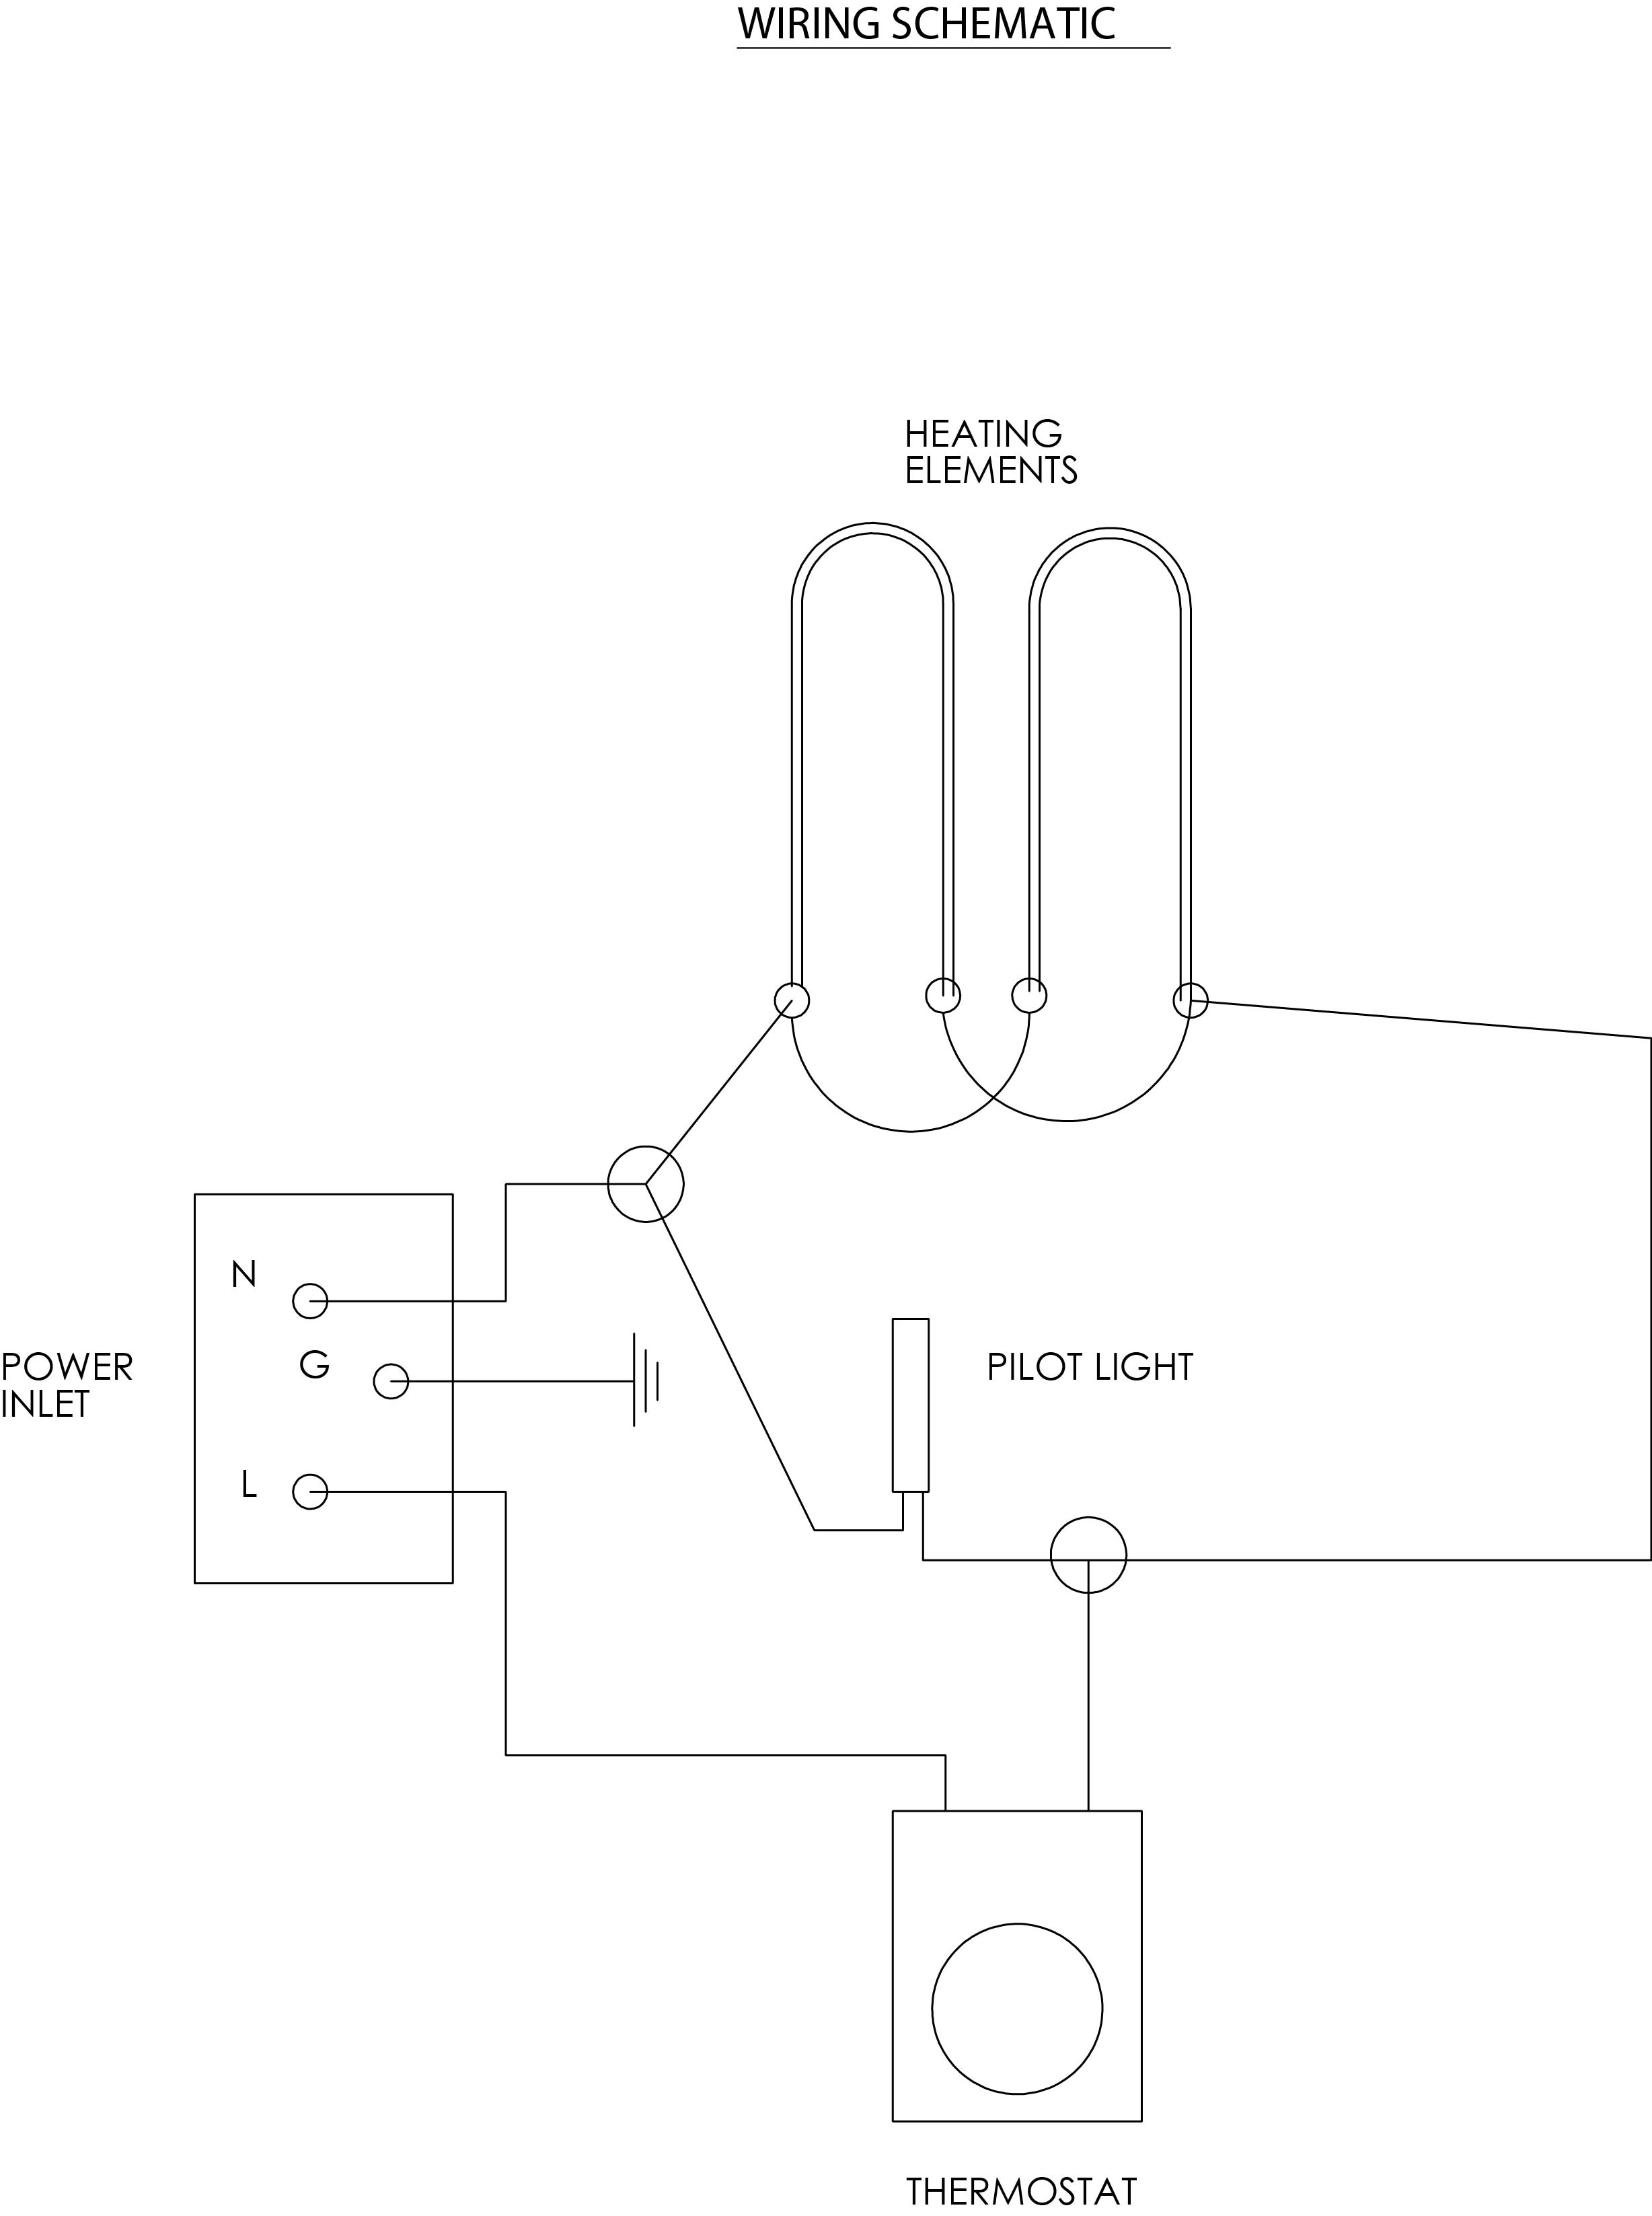 240v wiring diagram baking element